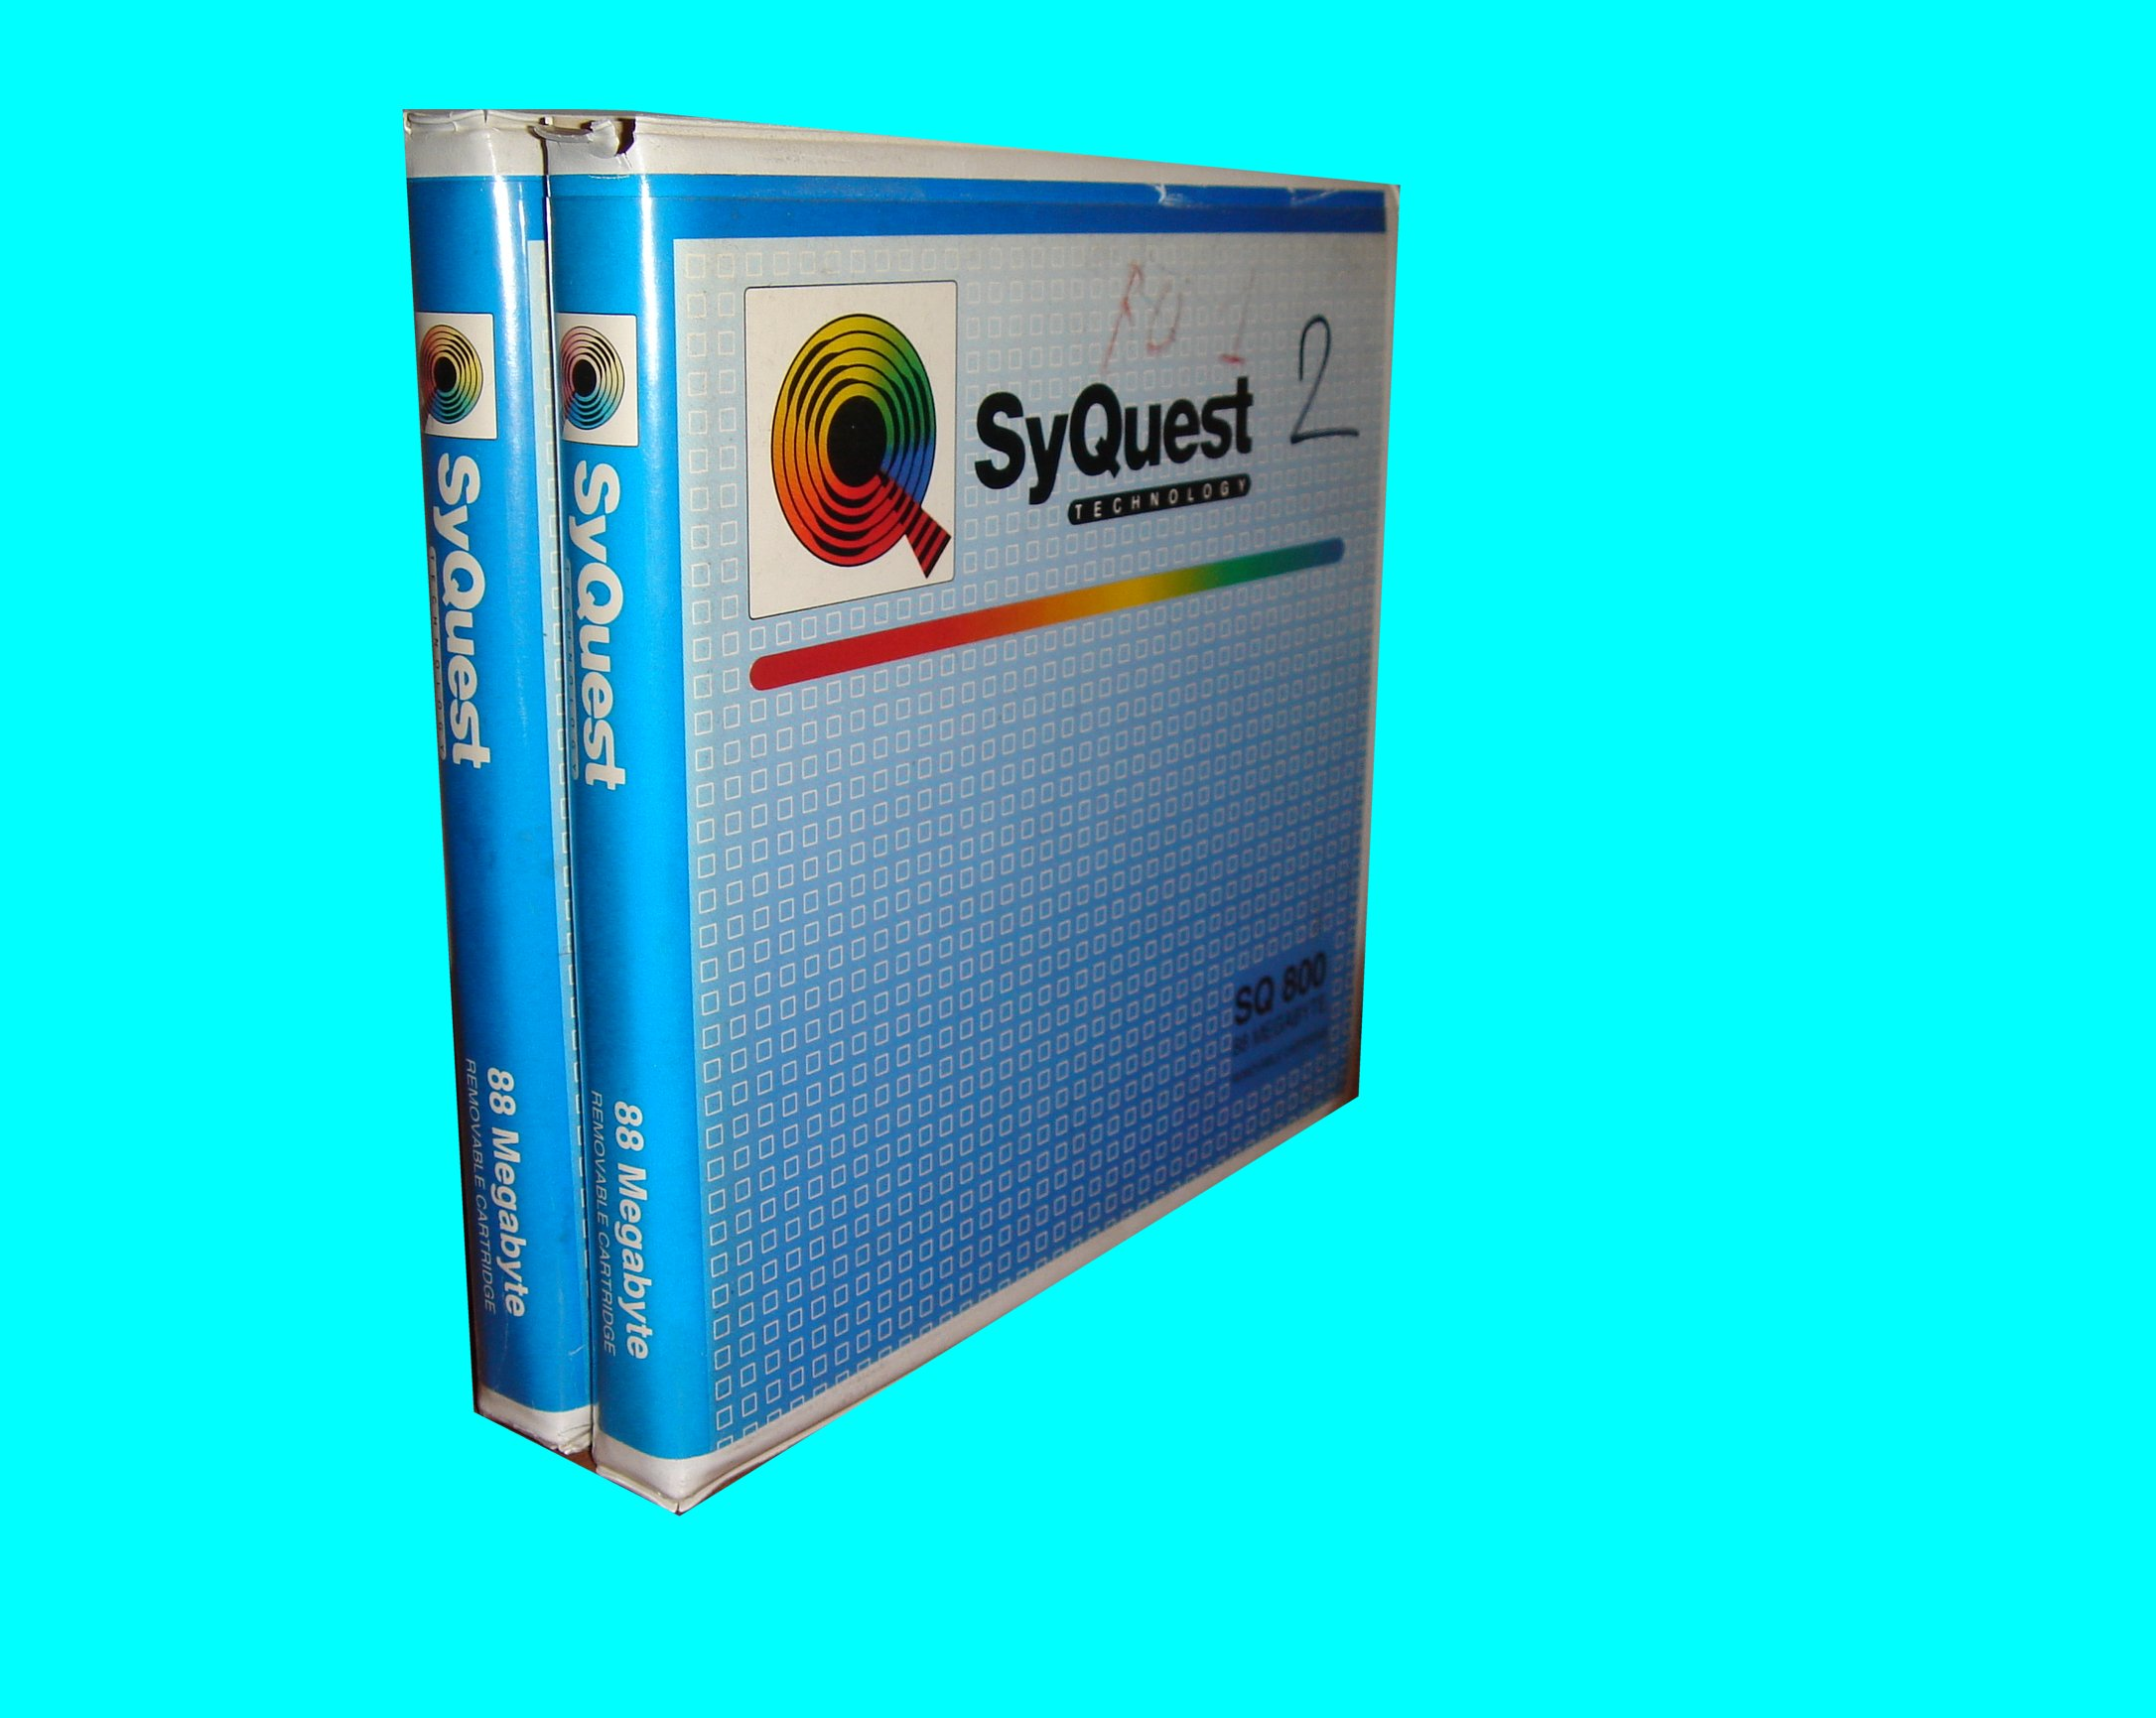 A pair of Syquest Disks that needed their data transferred to CD.